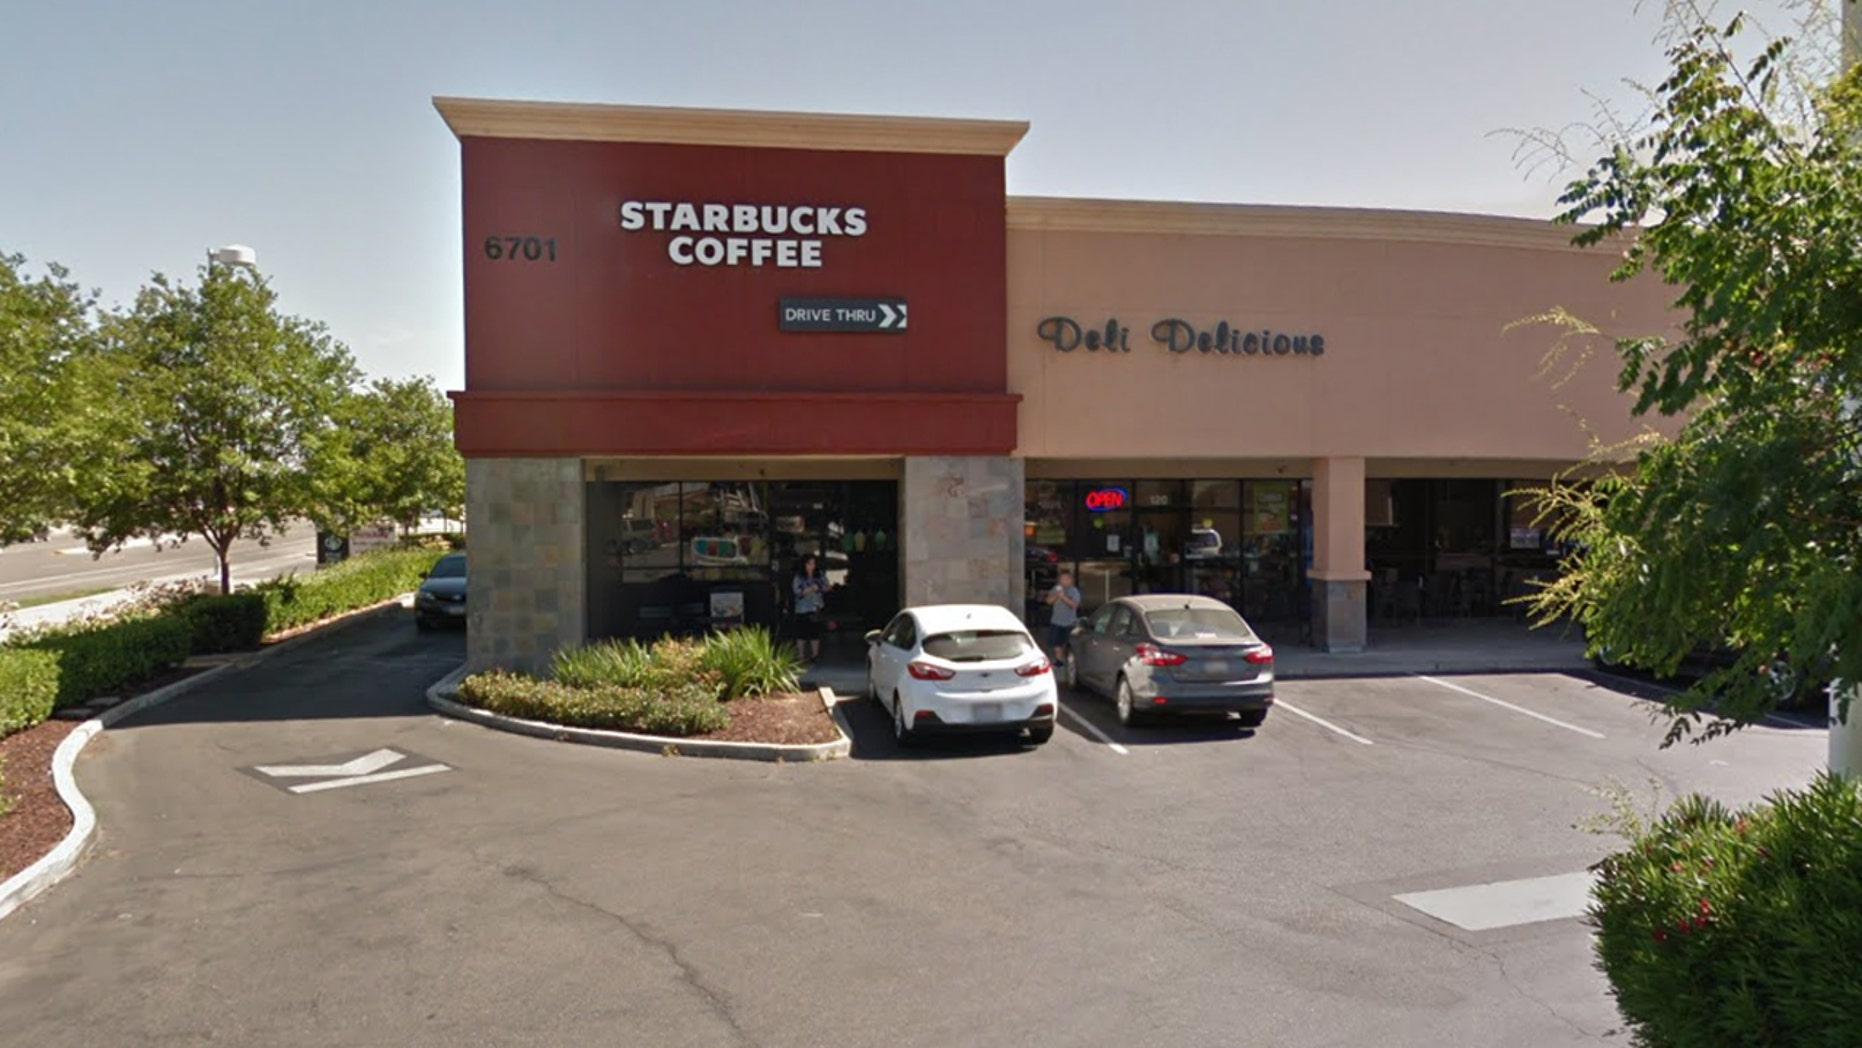 A former Starbucks employee who worked at the coffee shop in Fresno is suing the chain for discrimination, claiming her boss treated her poorly after she shared plans to transition from male to female.